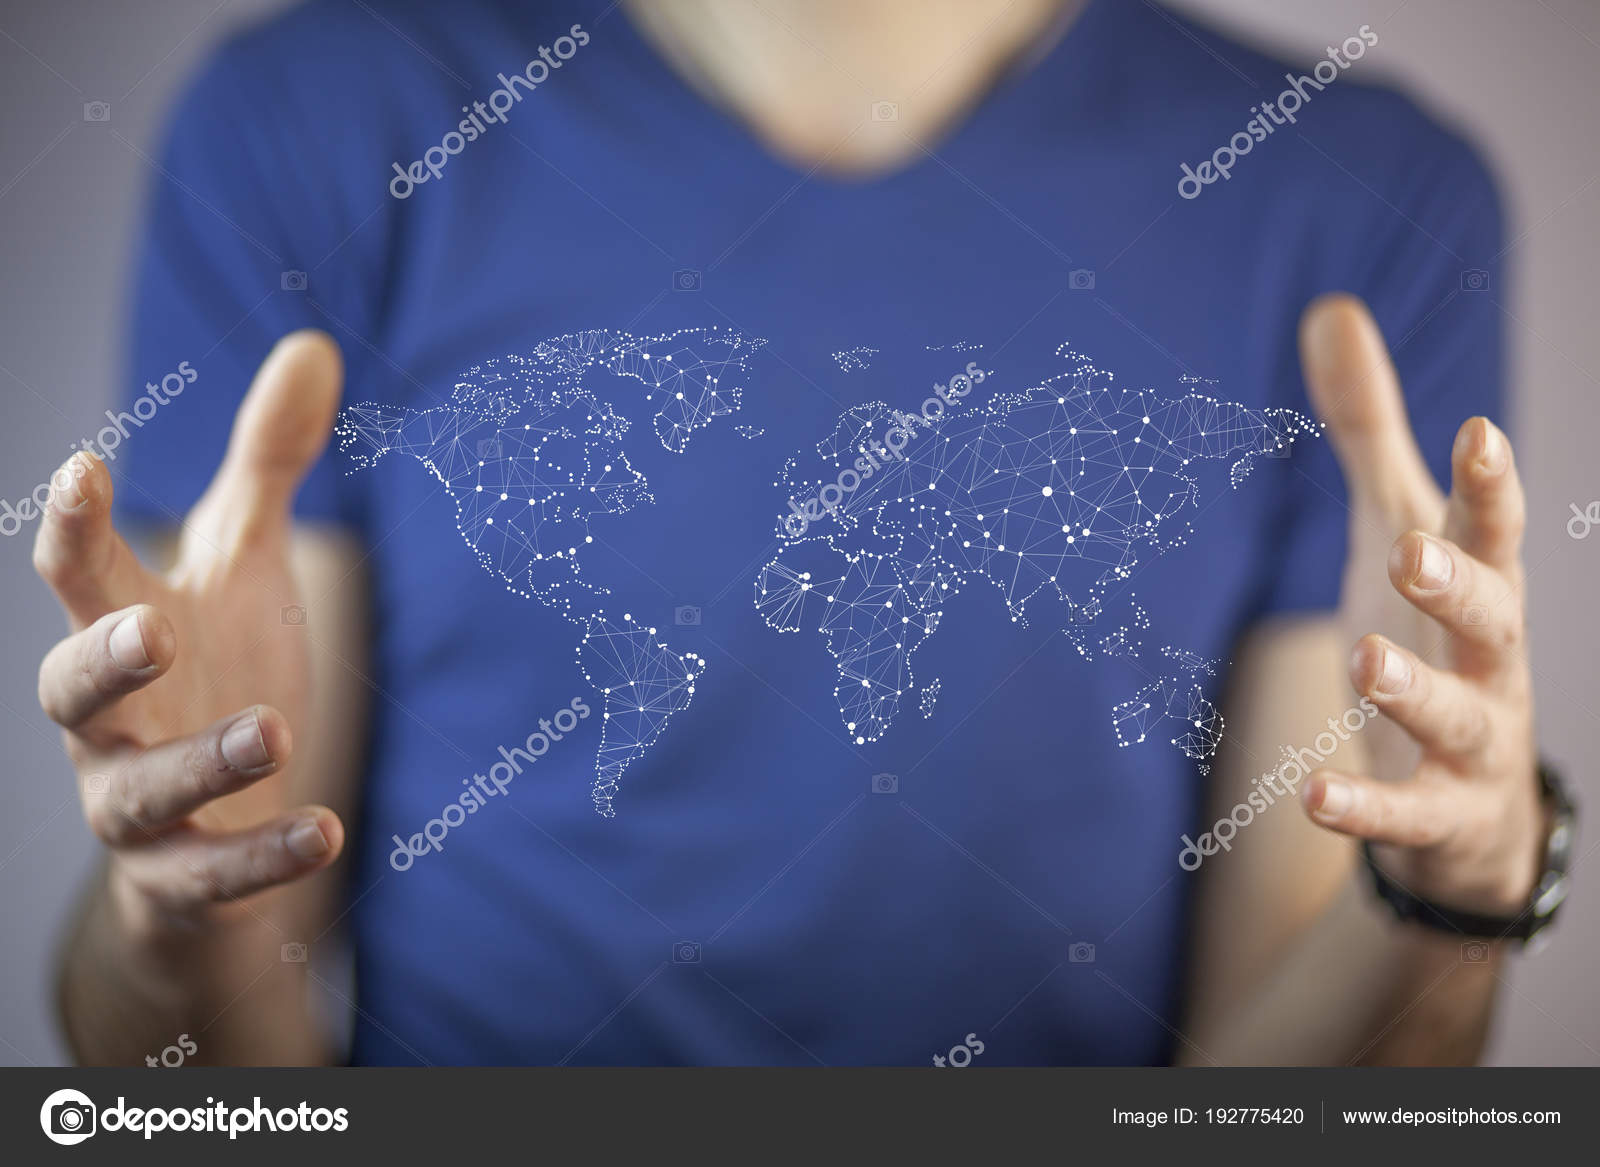 World Map On Hands.Businessman Holding World Map Hands Stock Photo C Tiko0305 192775420